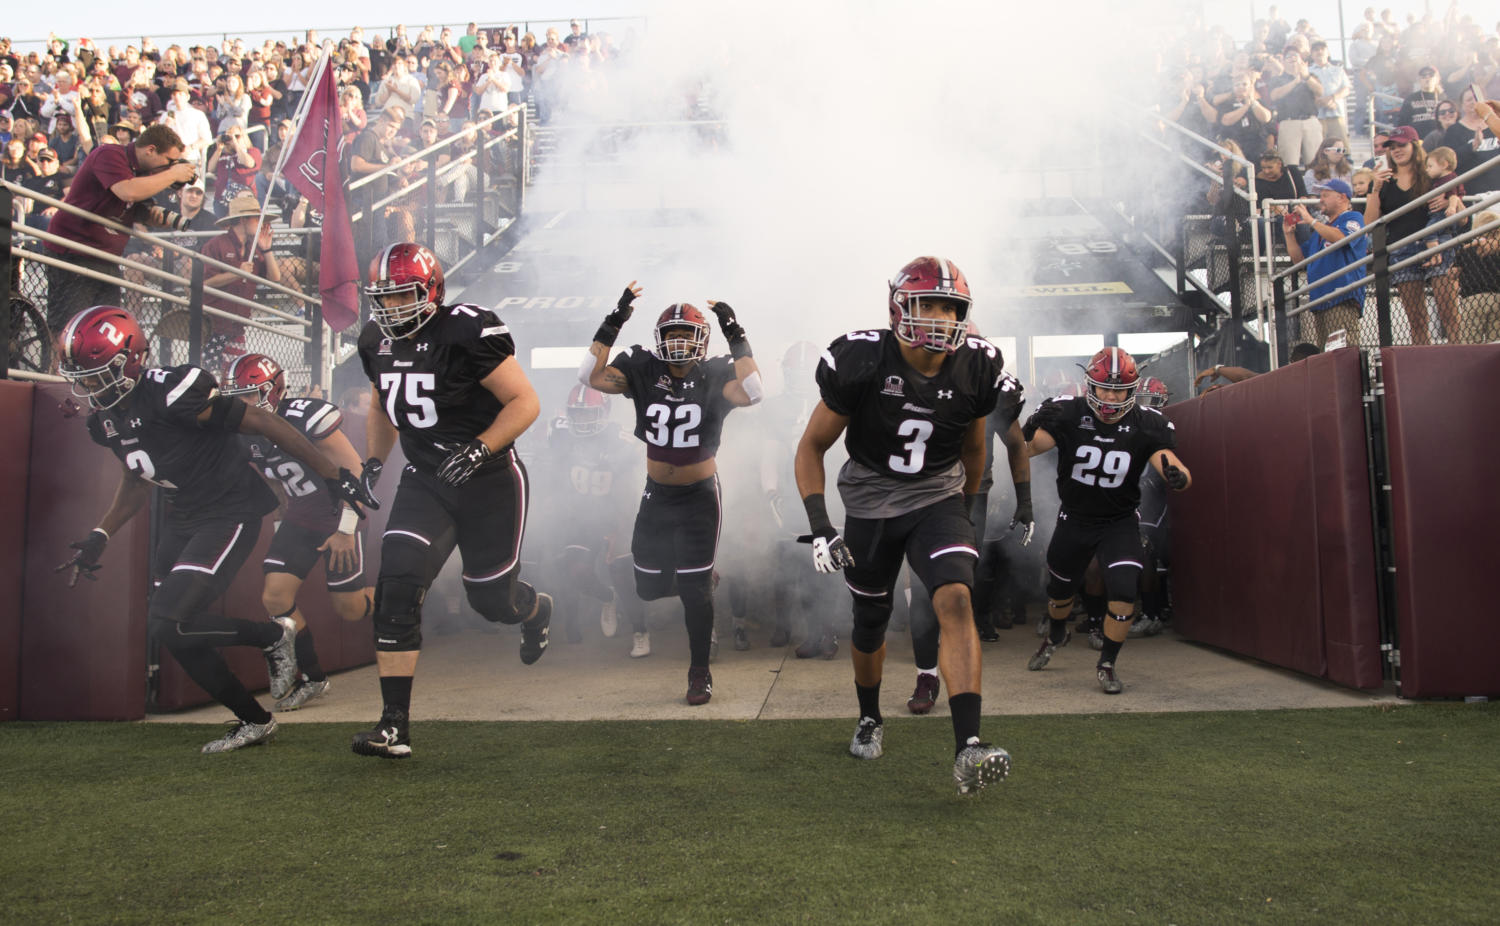 Salukis rush into the stadium Saturday, Sept. 30, 2017, before the match against the University of Northern Iowa at Saluki Stadium. (Dylan Nelson   @Dylan_Nelson99)